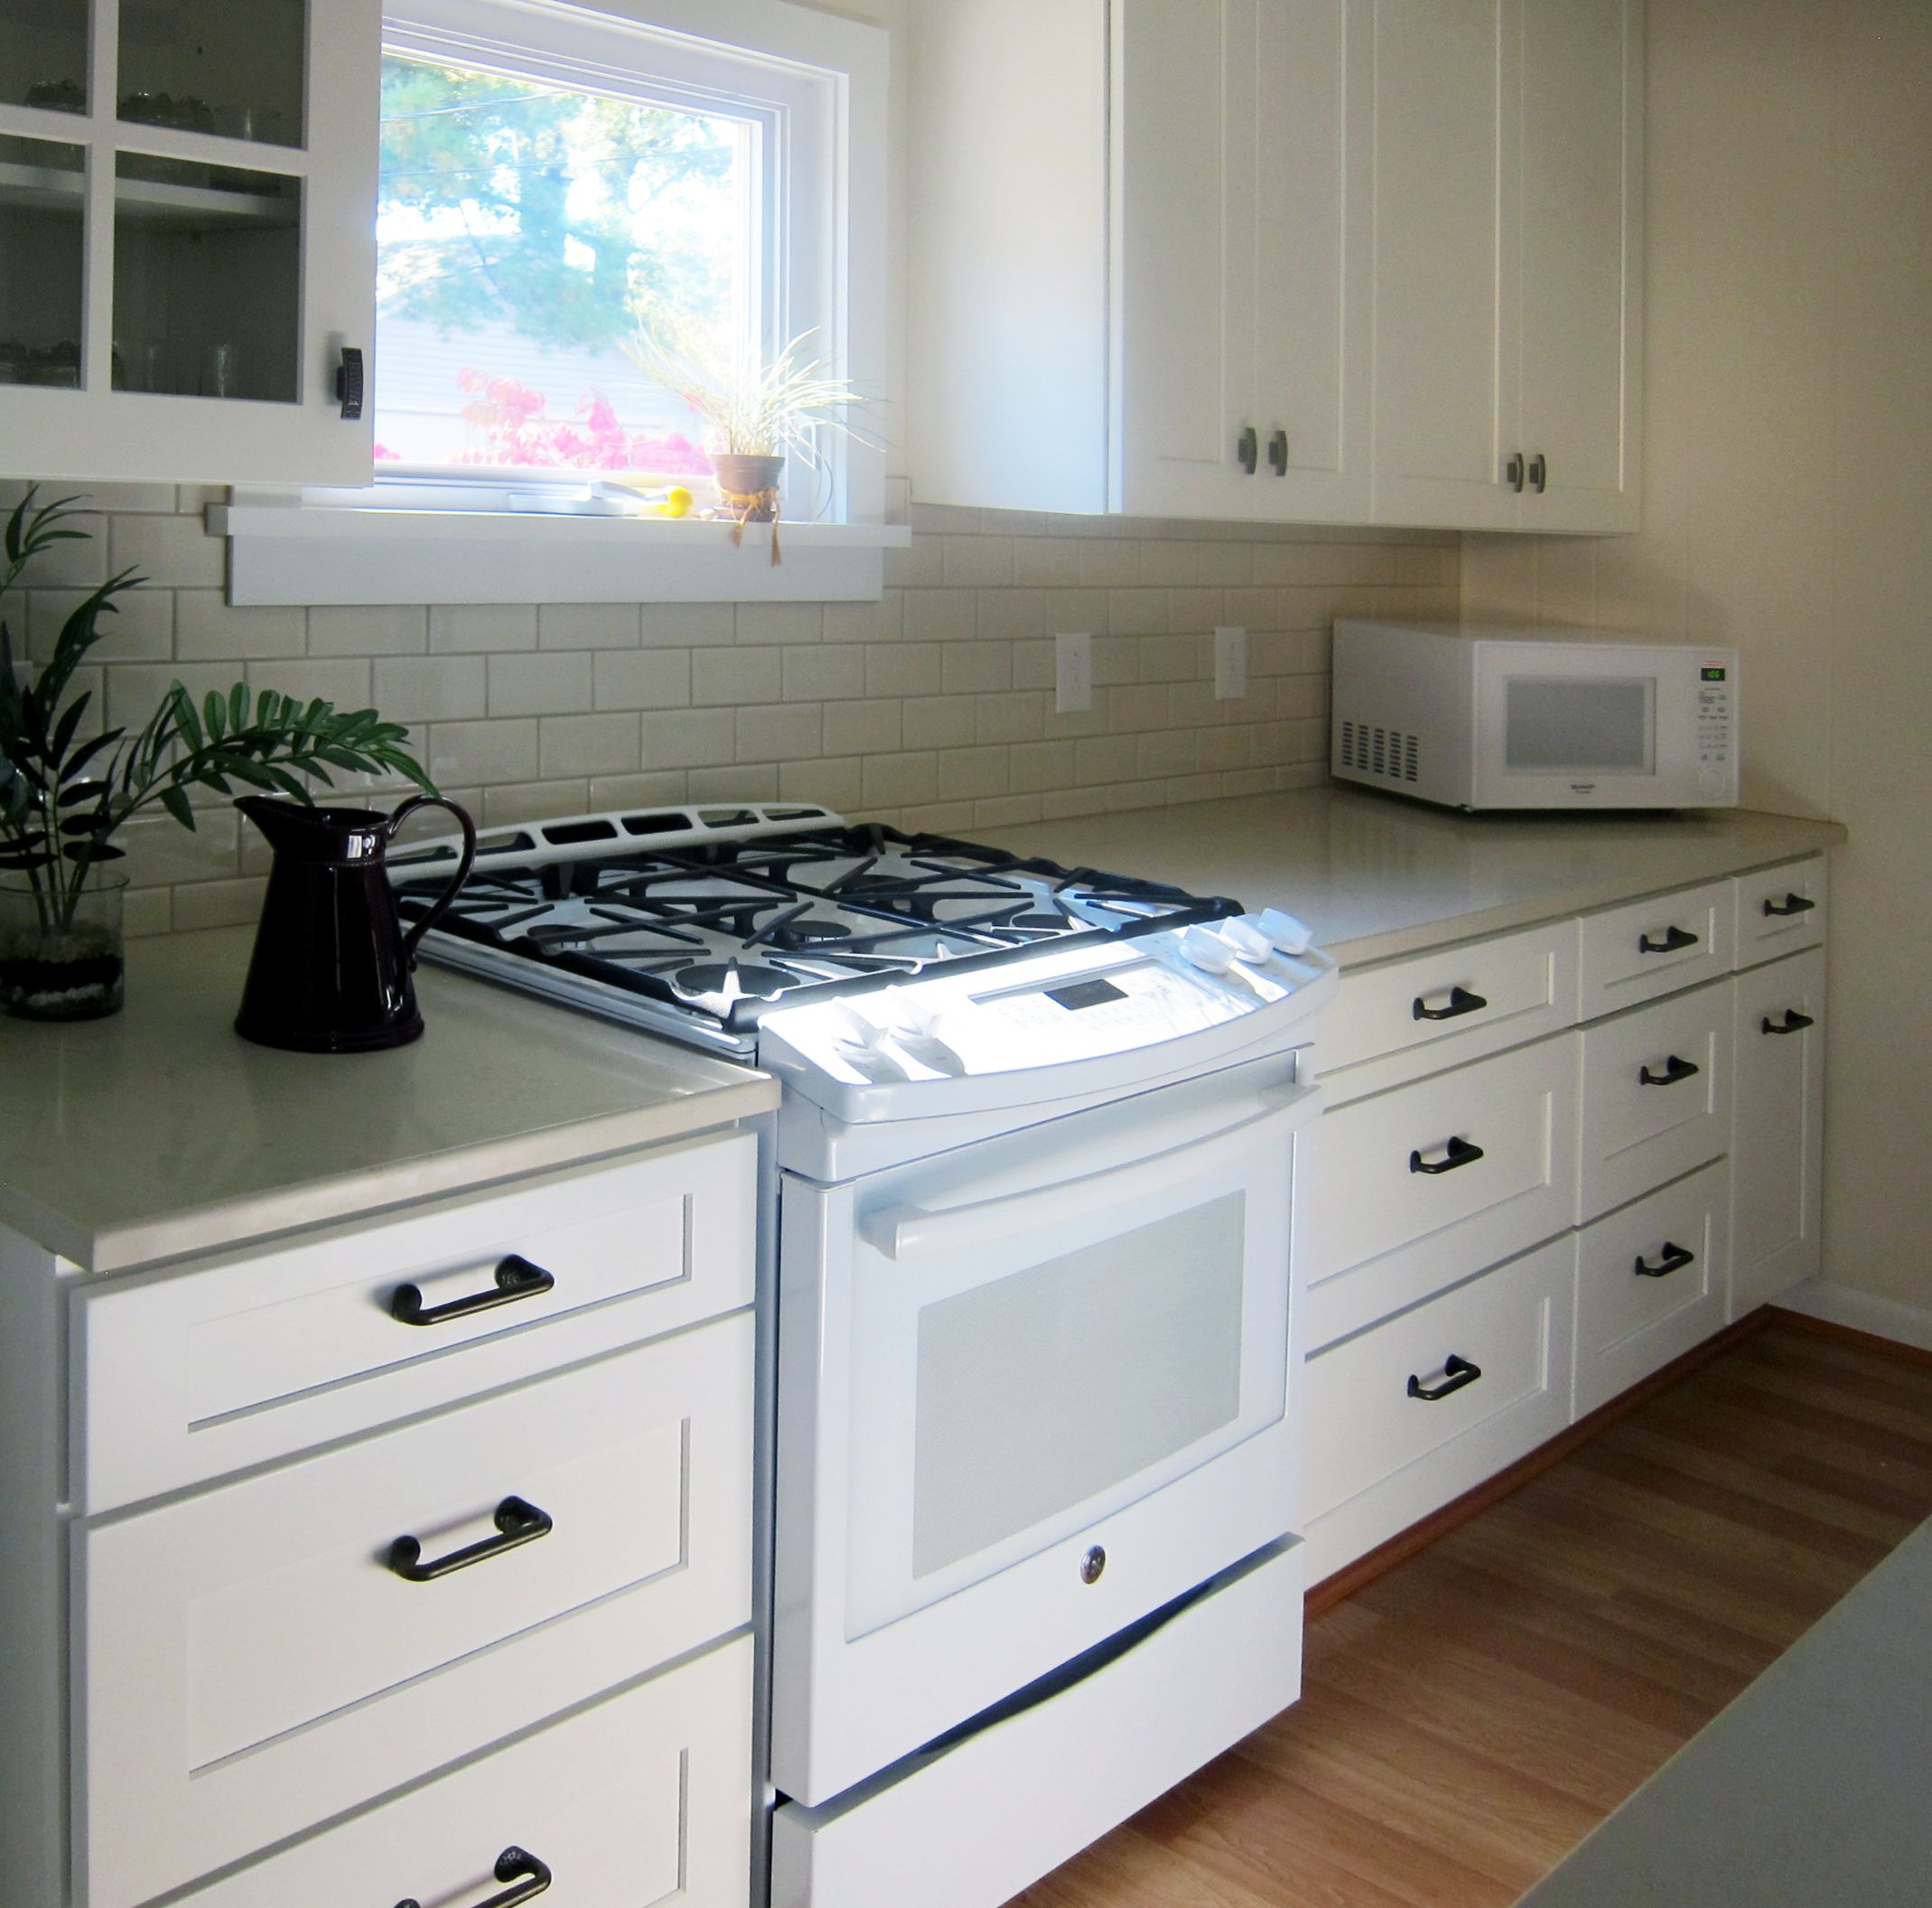 Replacing Kitchen Desk With Cabinets I Used Faircrest Shaker White Kitchen Cabinets. The